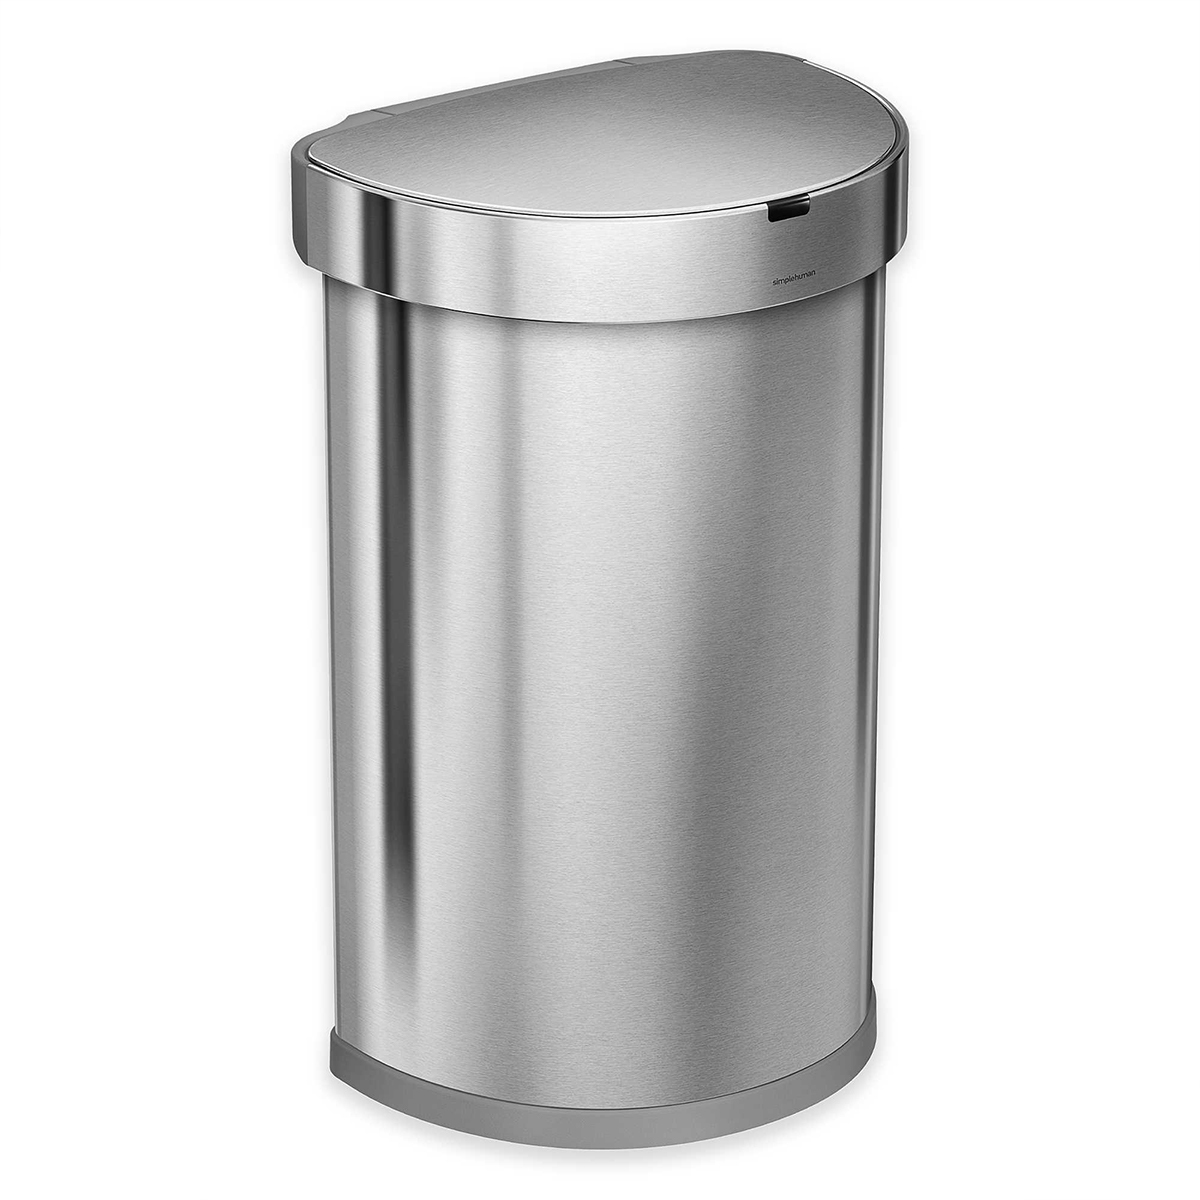 Sleek touch-free trash can with stainless-steel finish photo